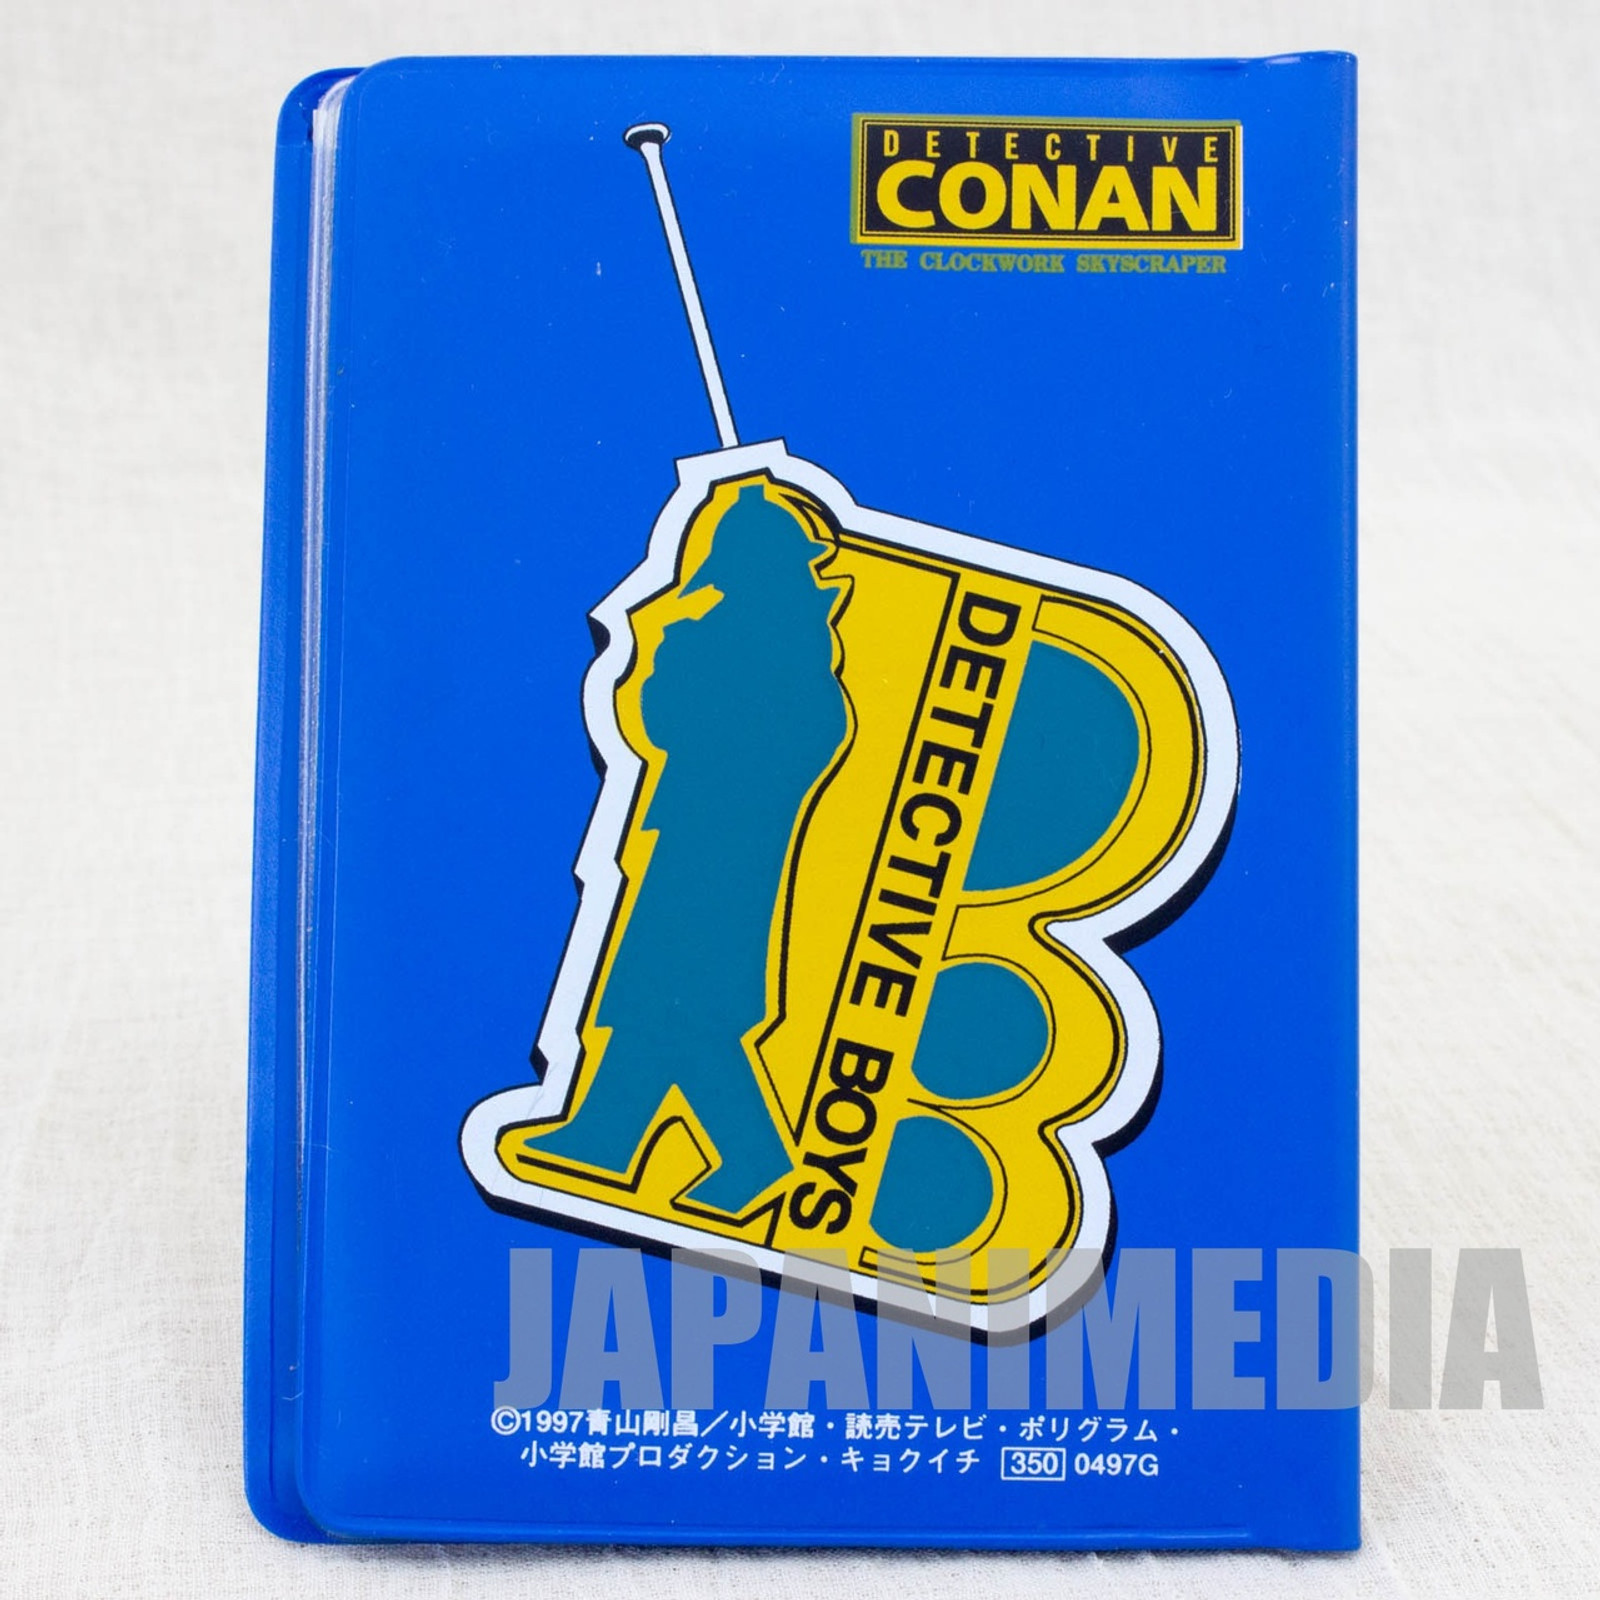 Case Closed Card Case / Detective Conan The Time Bombed Skyscraper JAPAN ANIME MANGA